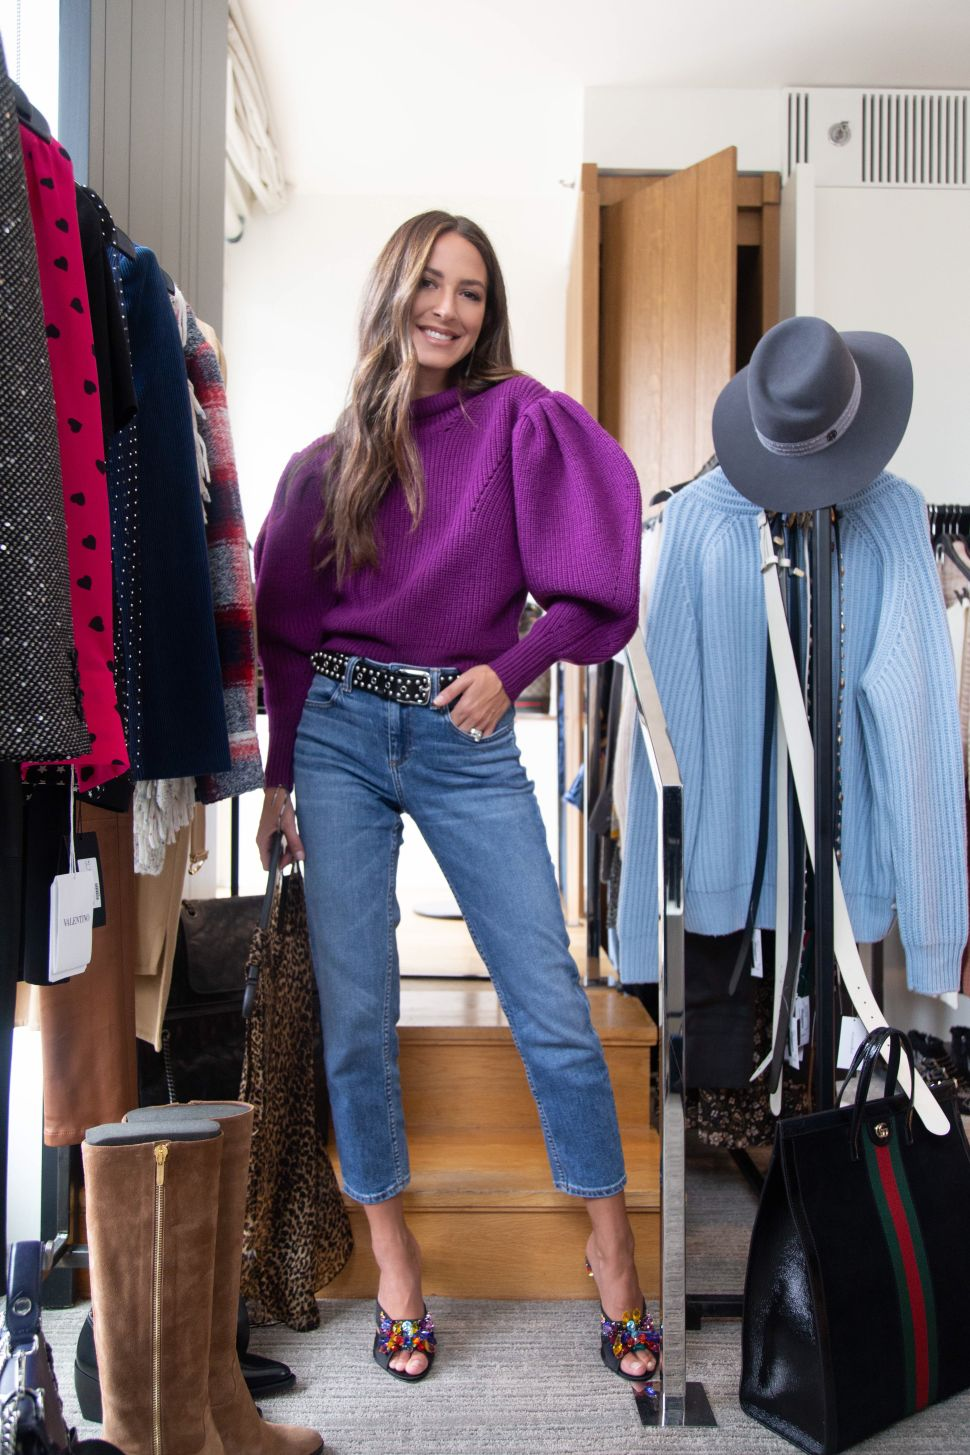 This fall, Charnas kicked off a multi-year licensing deal with Nordstrom which, so far, has been the retailer's most successful partnership ever